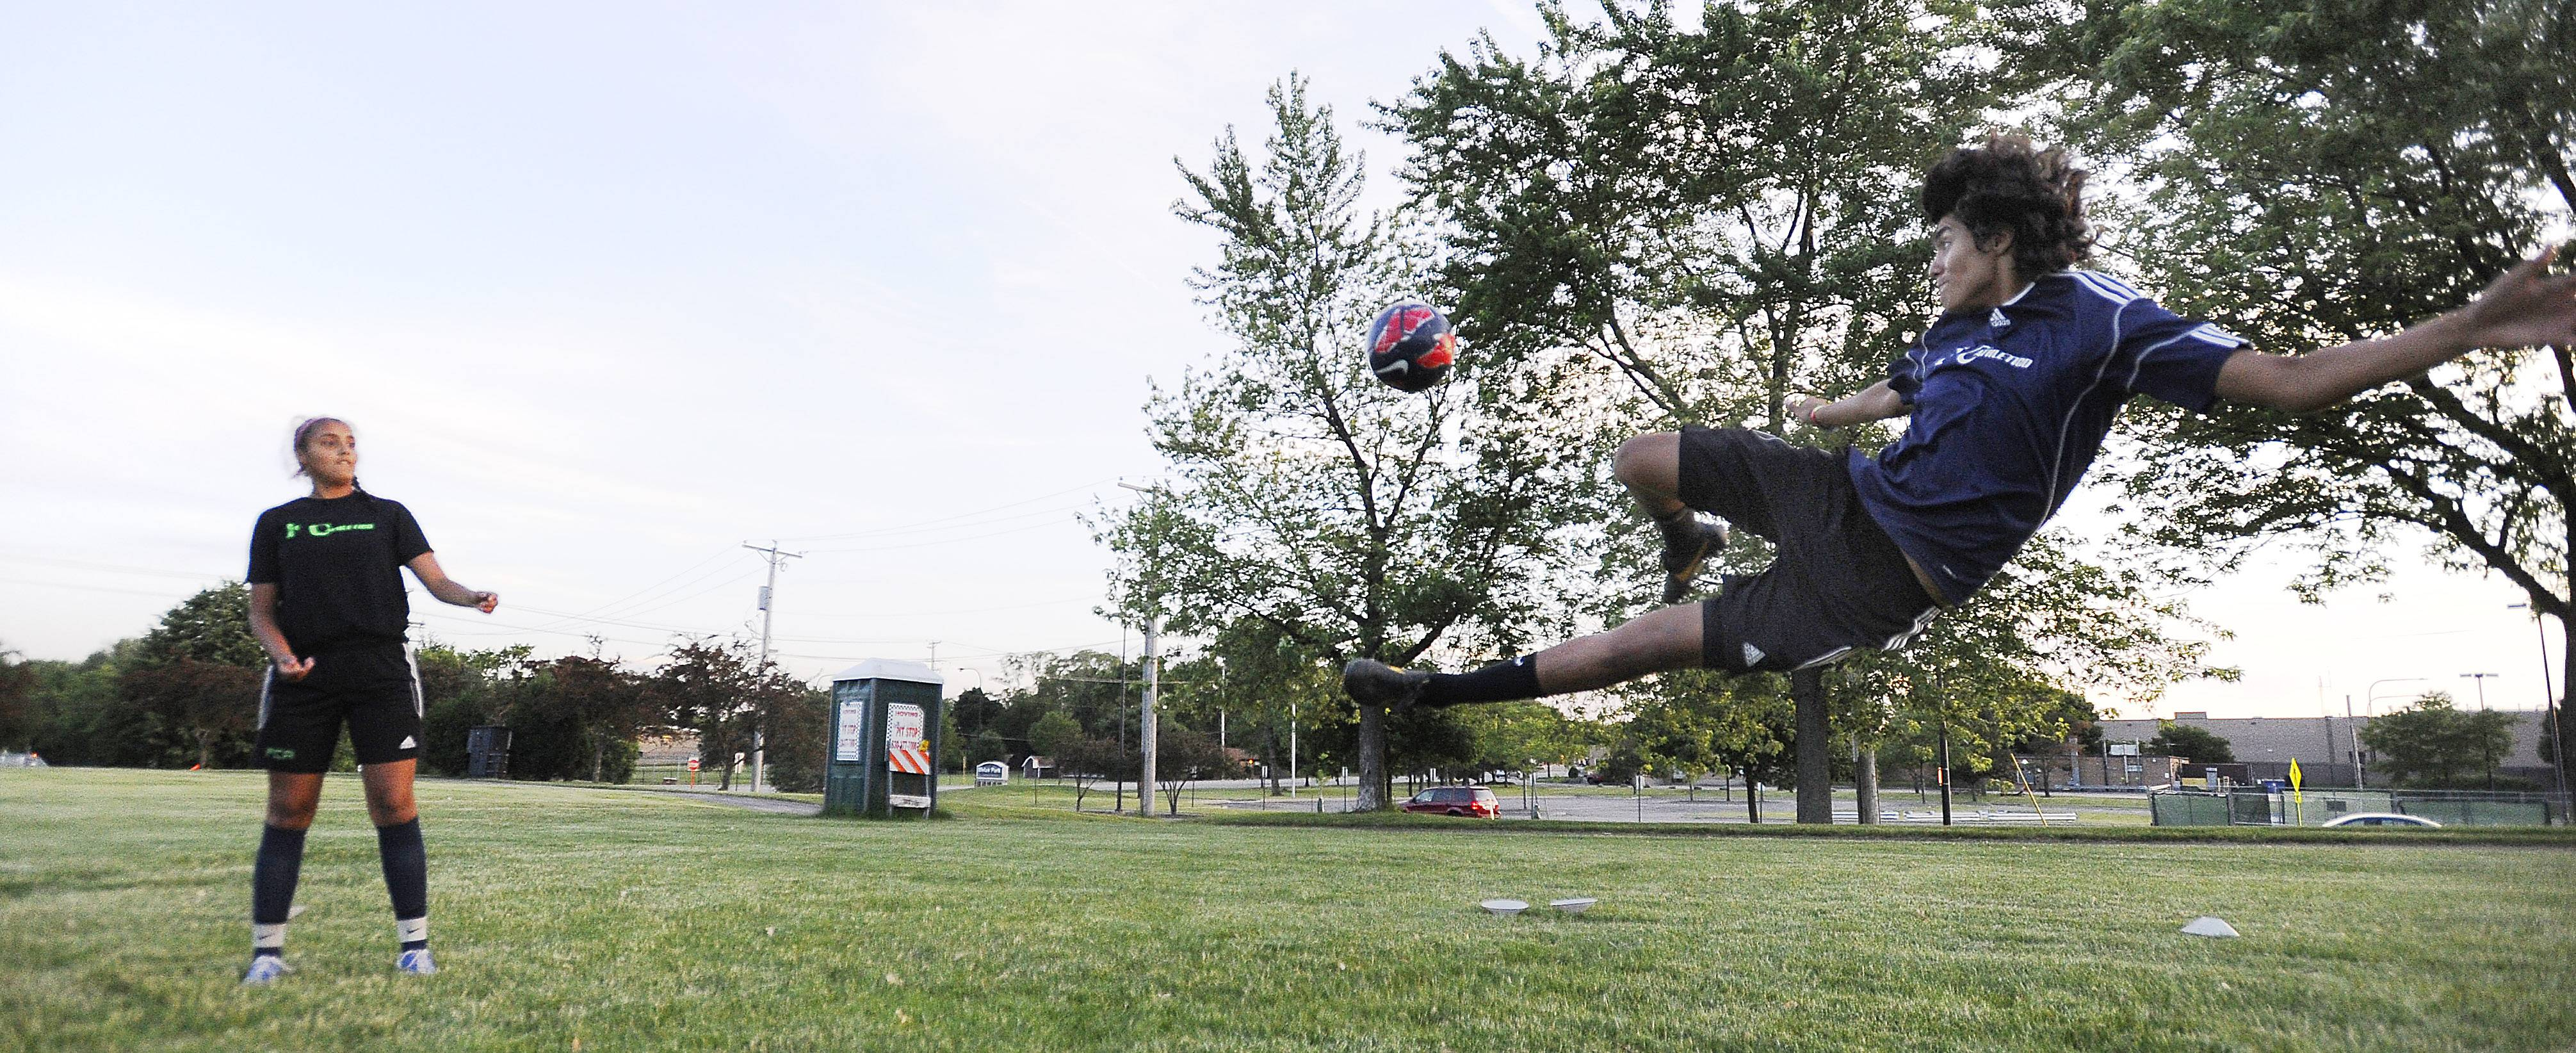 Wheeling's Luis Arreola, 15, leaps into the air to attempt a shot on goal as his sister, Alondra Arreola, 14, watches. The siblings both have their sights set on professional soccer careers and hope to one day represent the U.S. or Mexico in a World Cup.